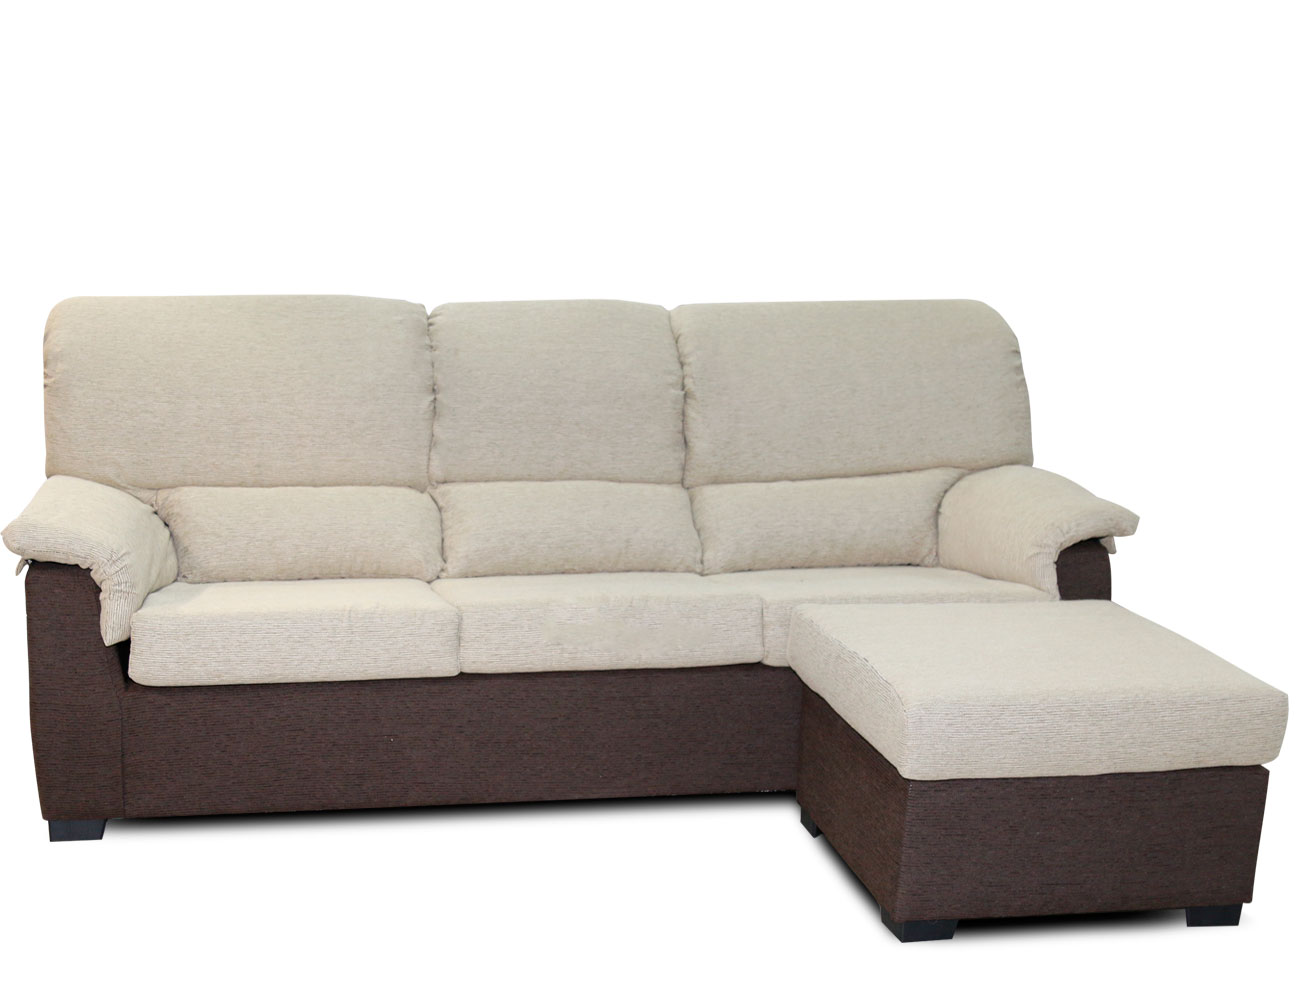 Factory sofas sevilla for Los sofas mas baratos